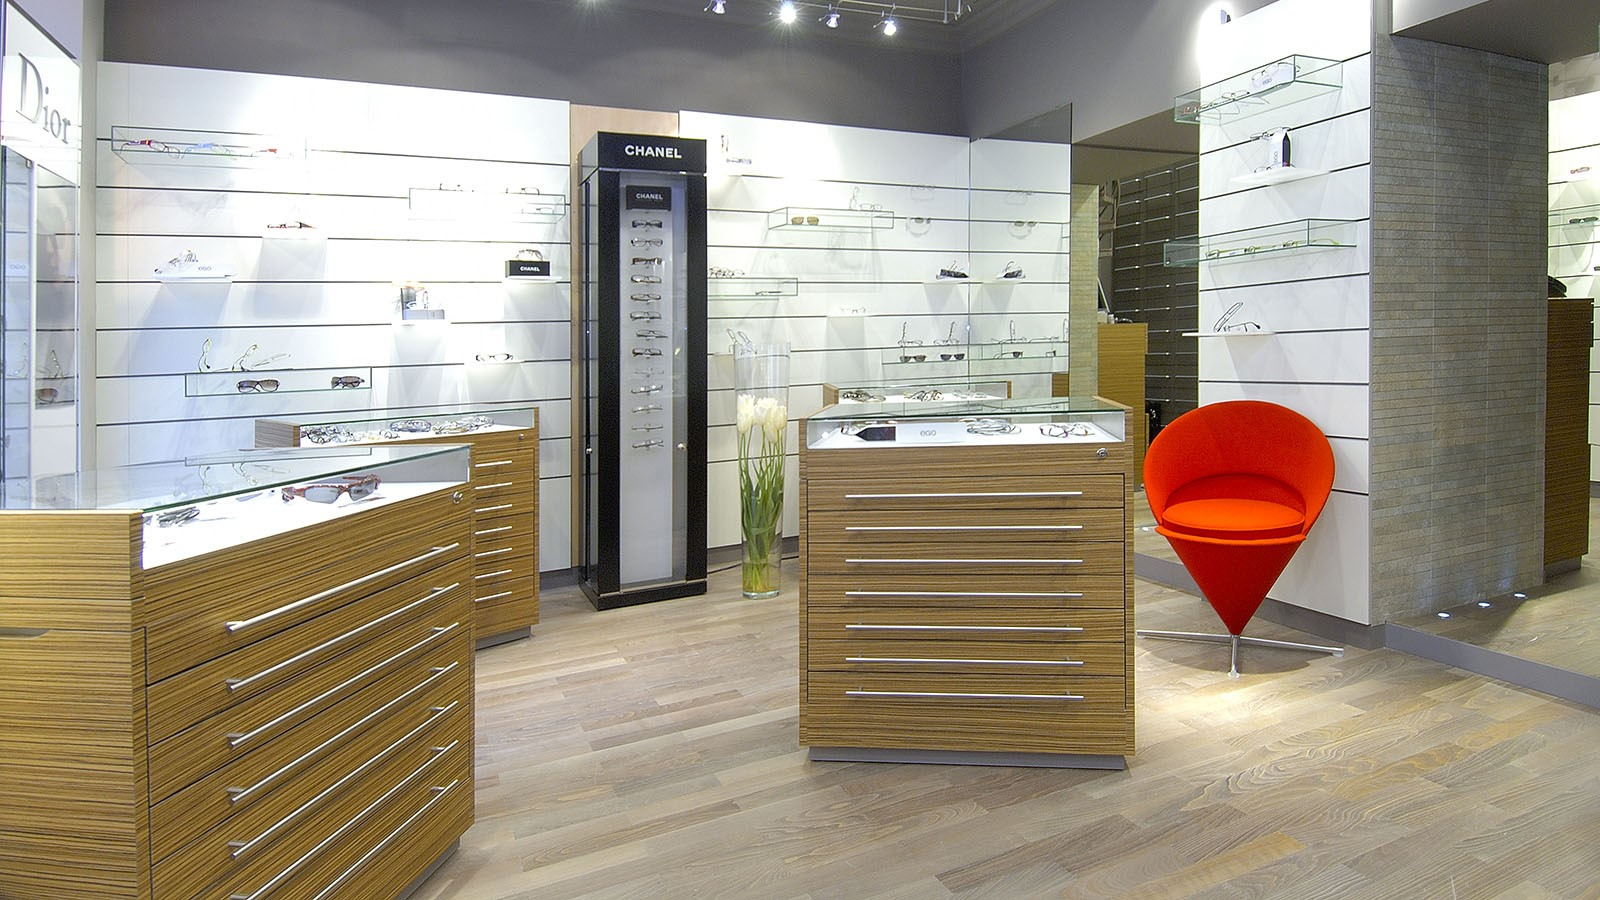 Boutique Optique Scribe Nantes Efi Design (1)